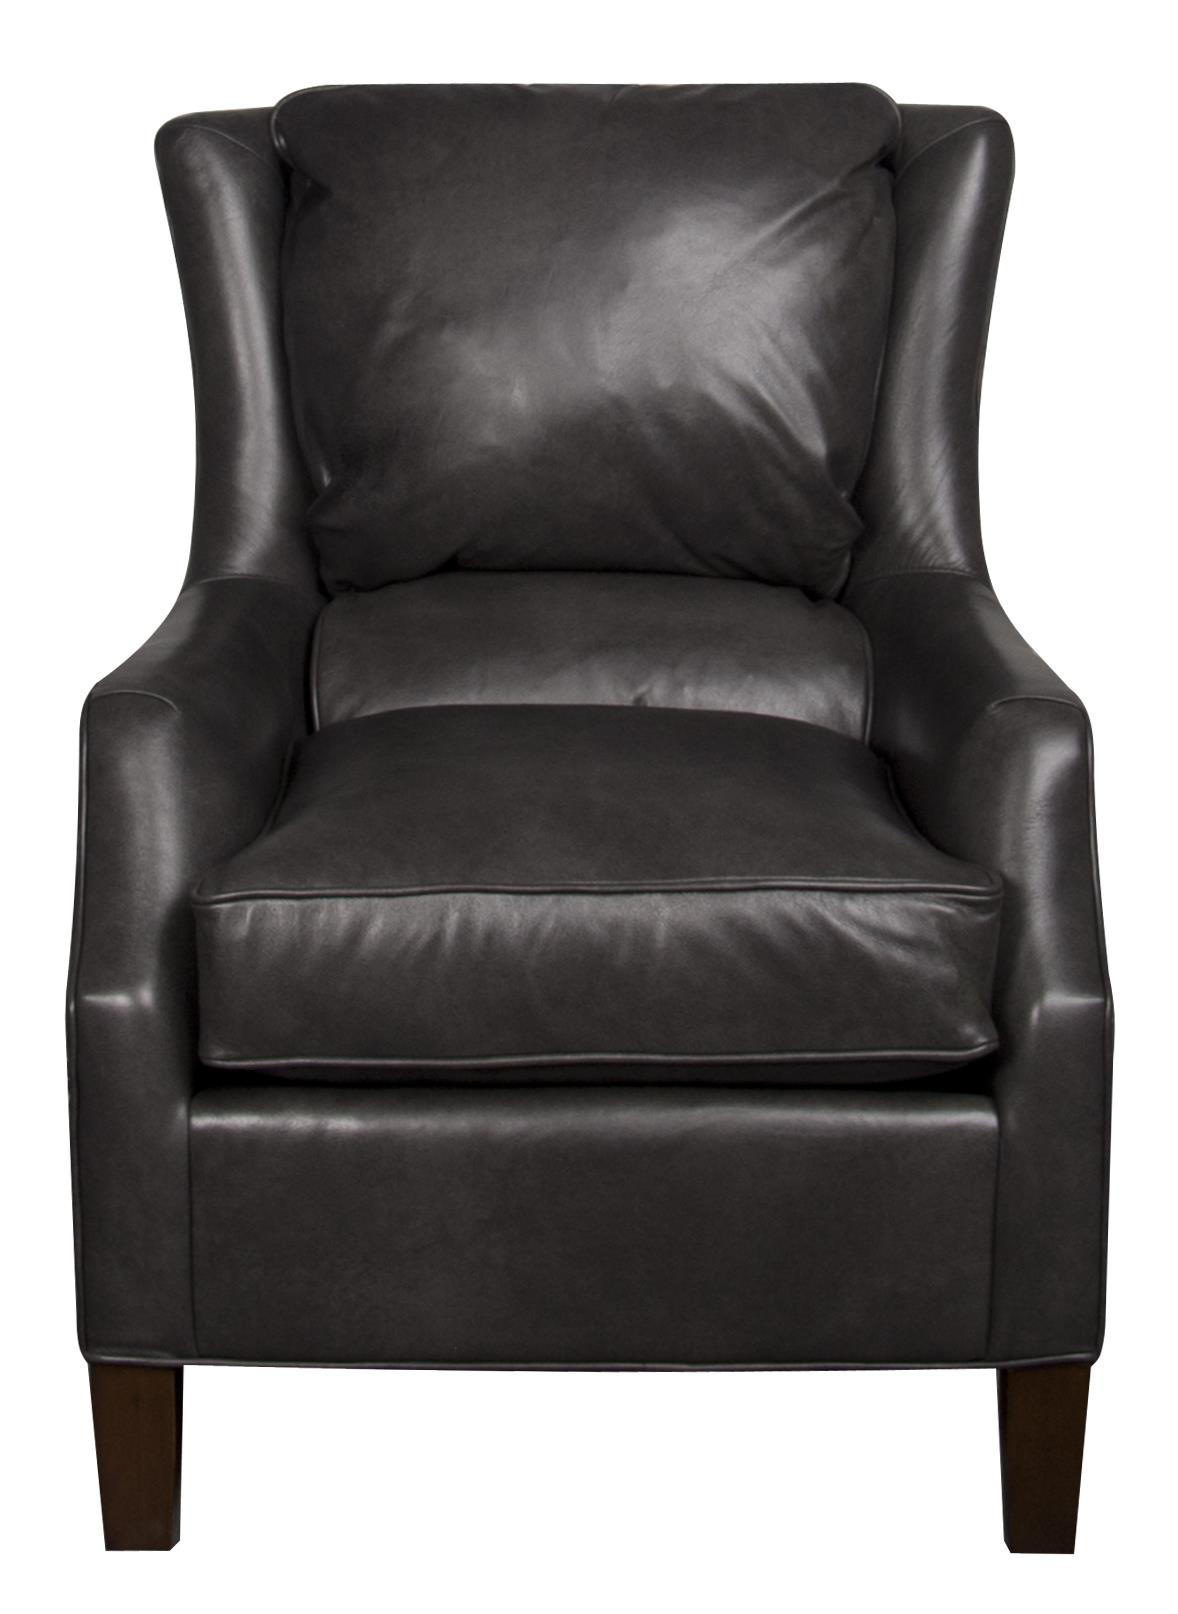 Morris Home Furnishings Sherry Sherry Leather Chair - Item Number: 699377201